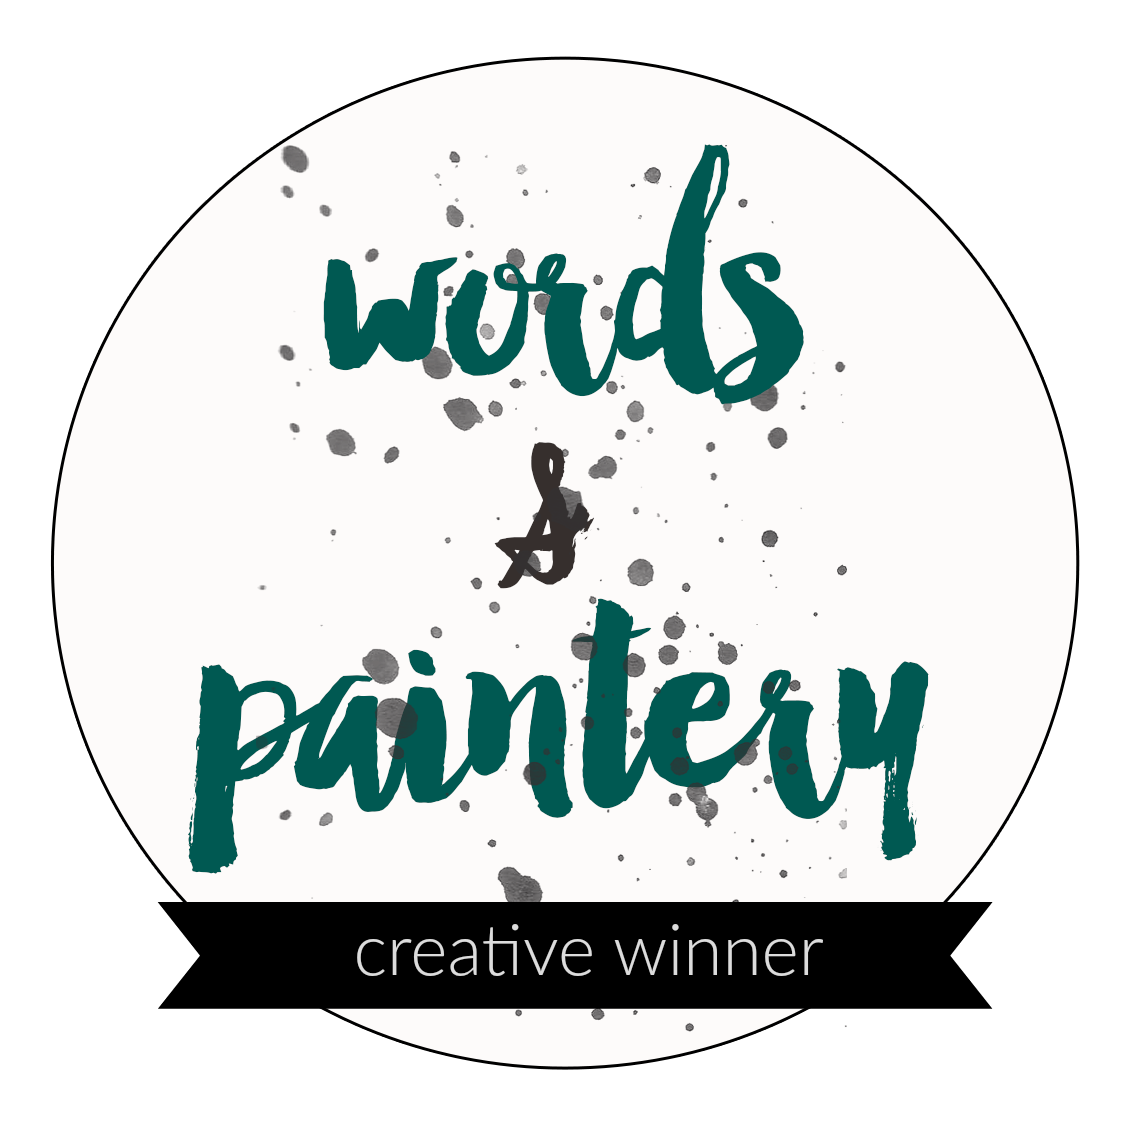 Words & Paintery challenge winner